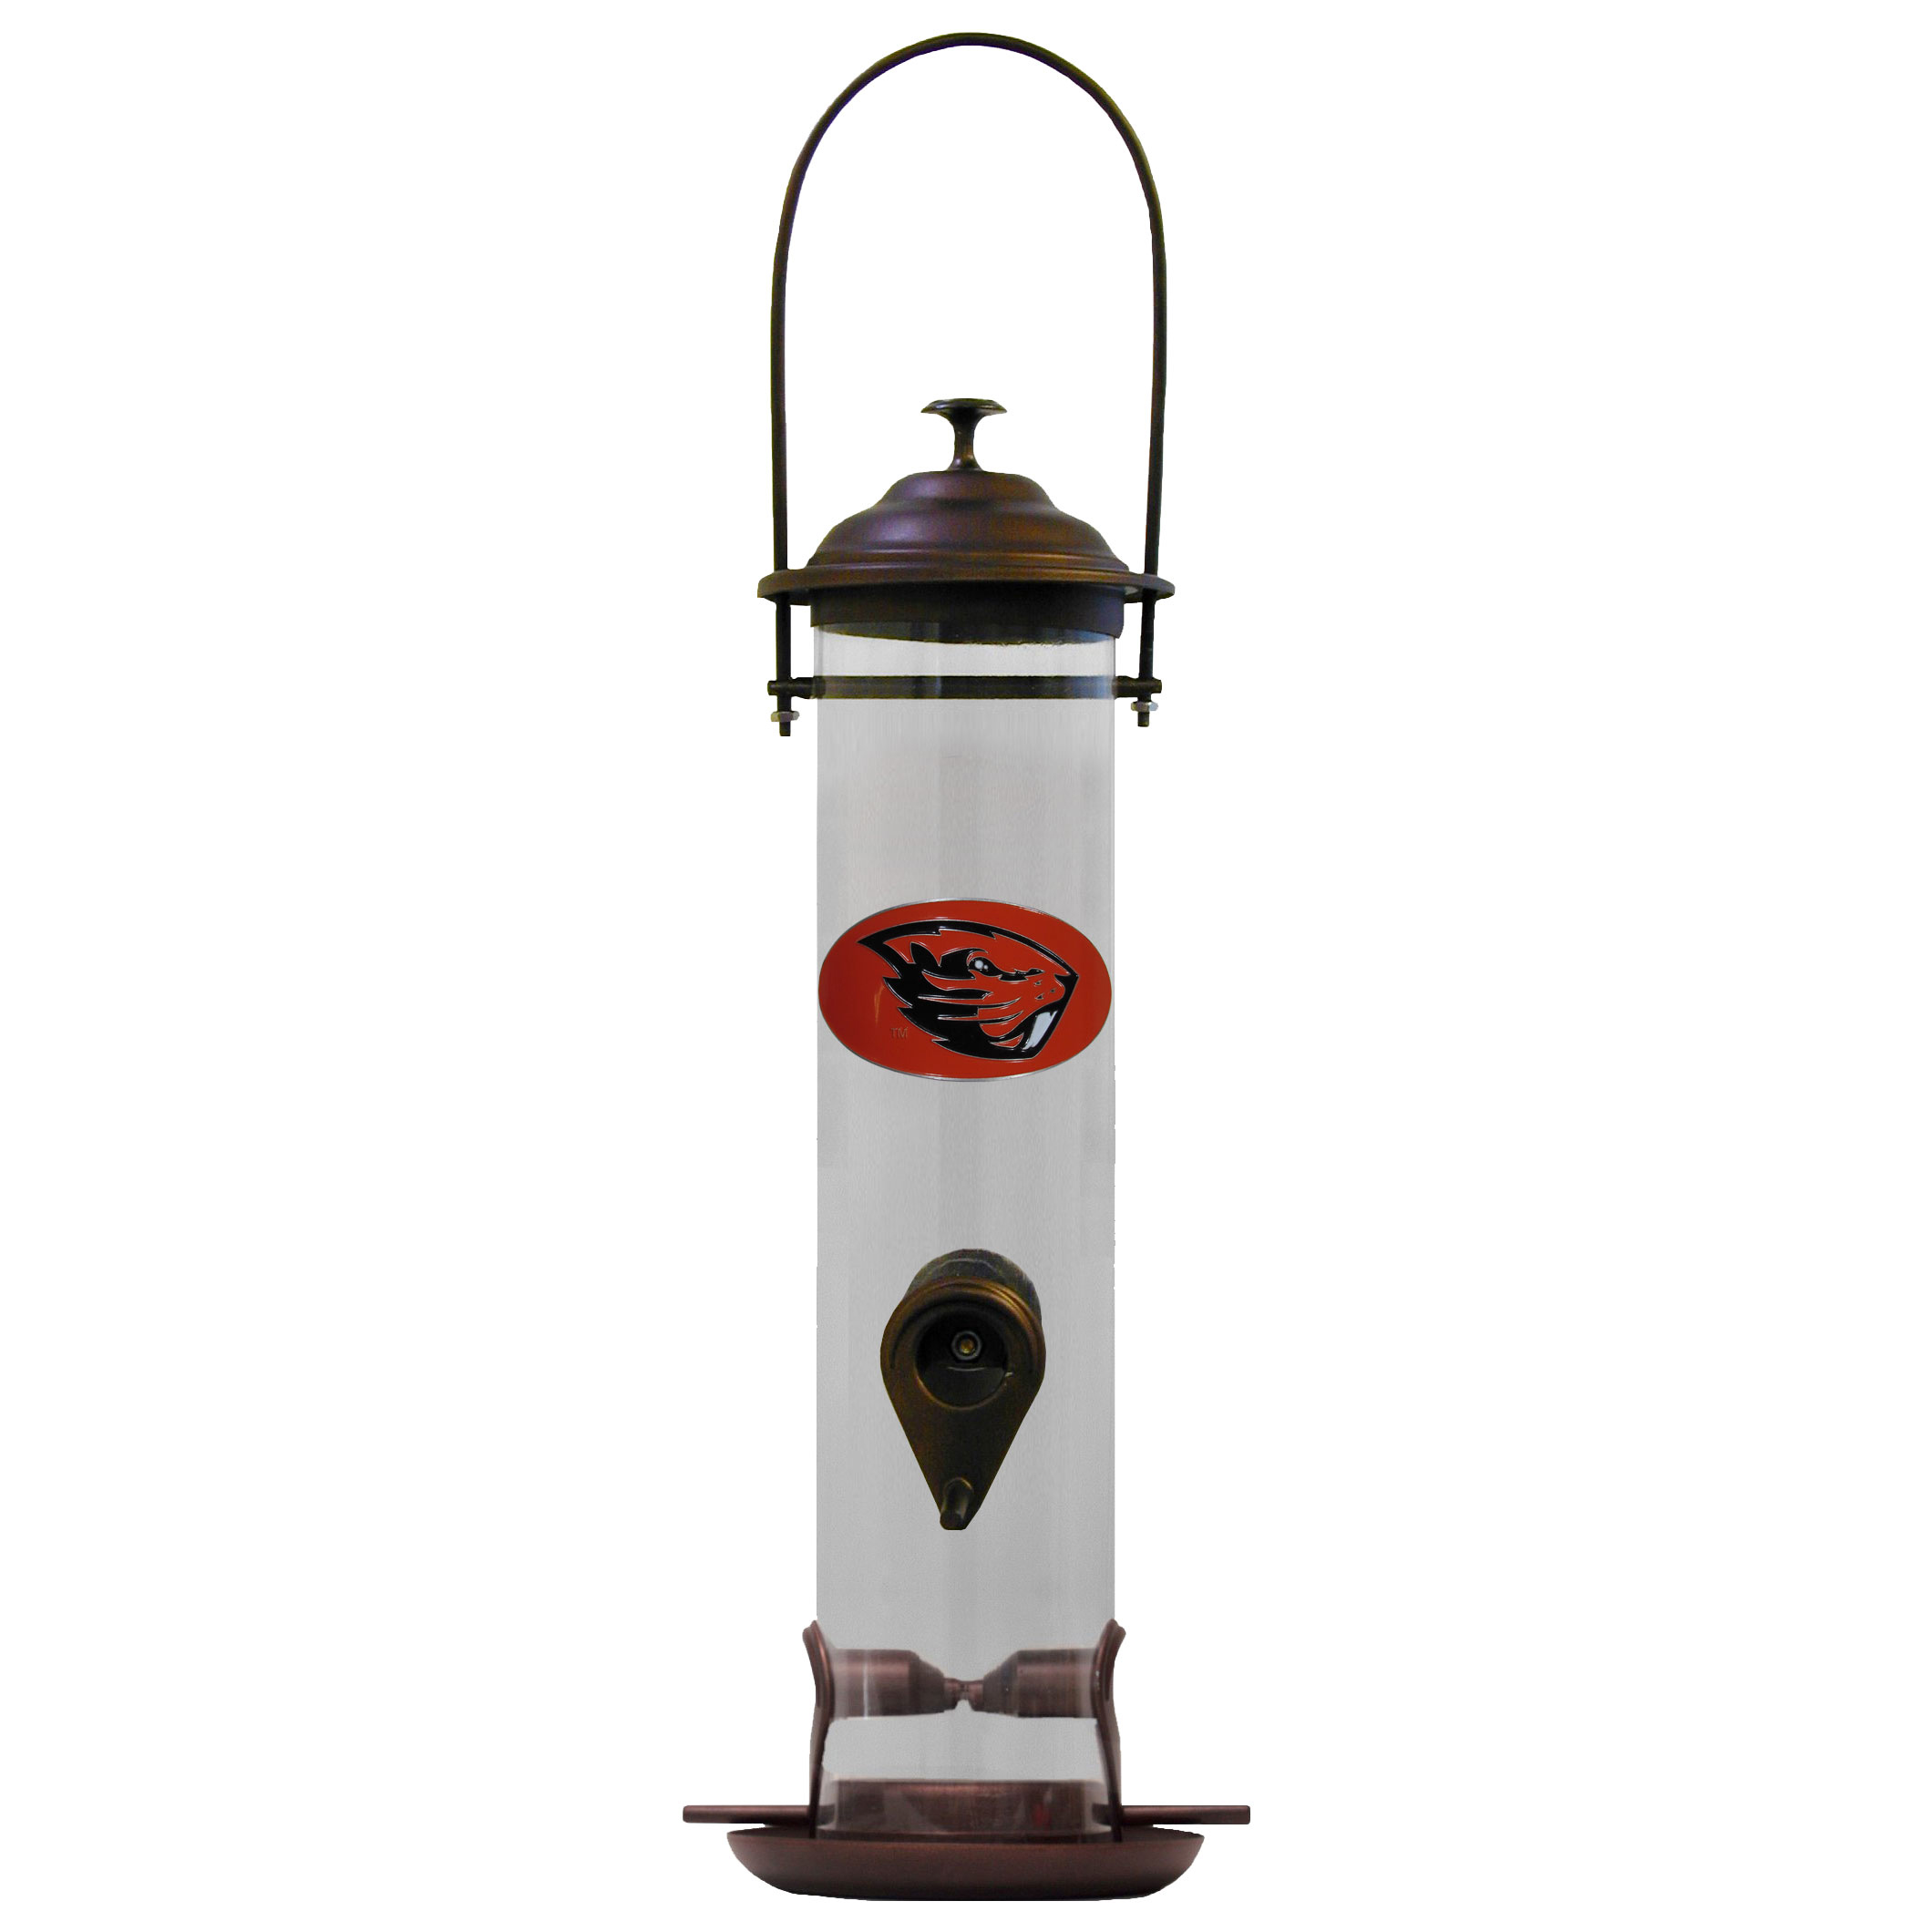 Oregon St. Beavers Thistle Bird Feeder - Our thistle bird feeder is 18 inches tall and has a 5 inch diameter catcher tray and holds 24 ounces of feed. Easy to clean and fill. The feeder features a fully cast and enameled Oregon St. Beavers emblem